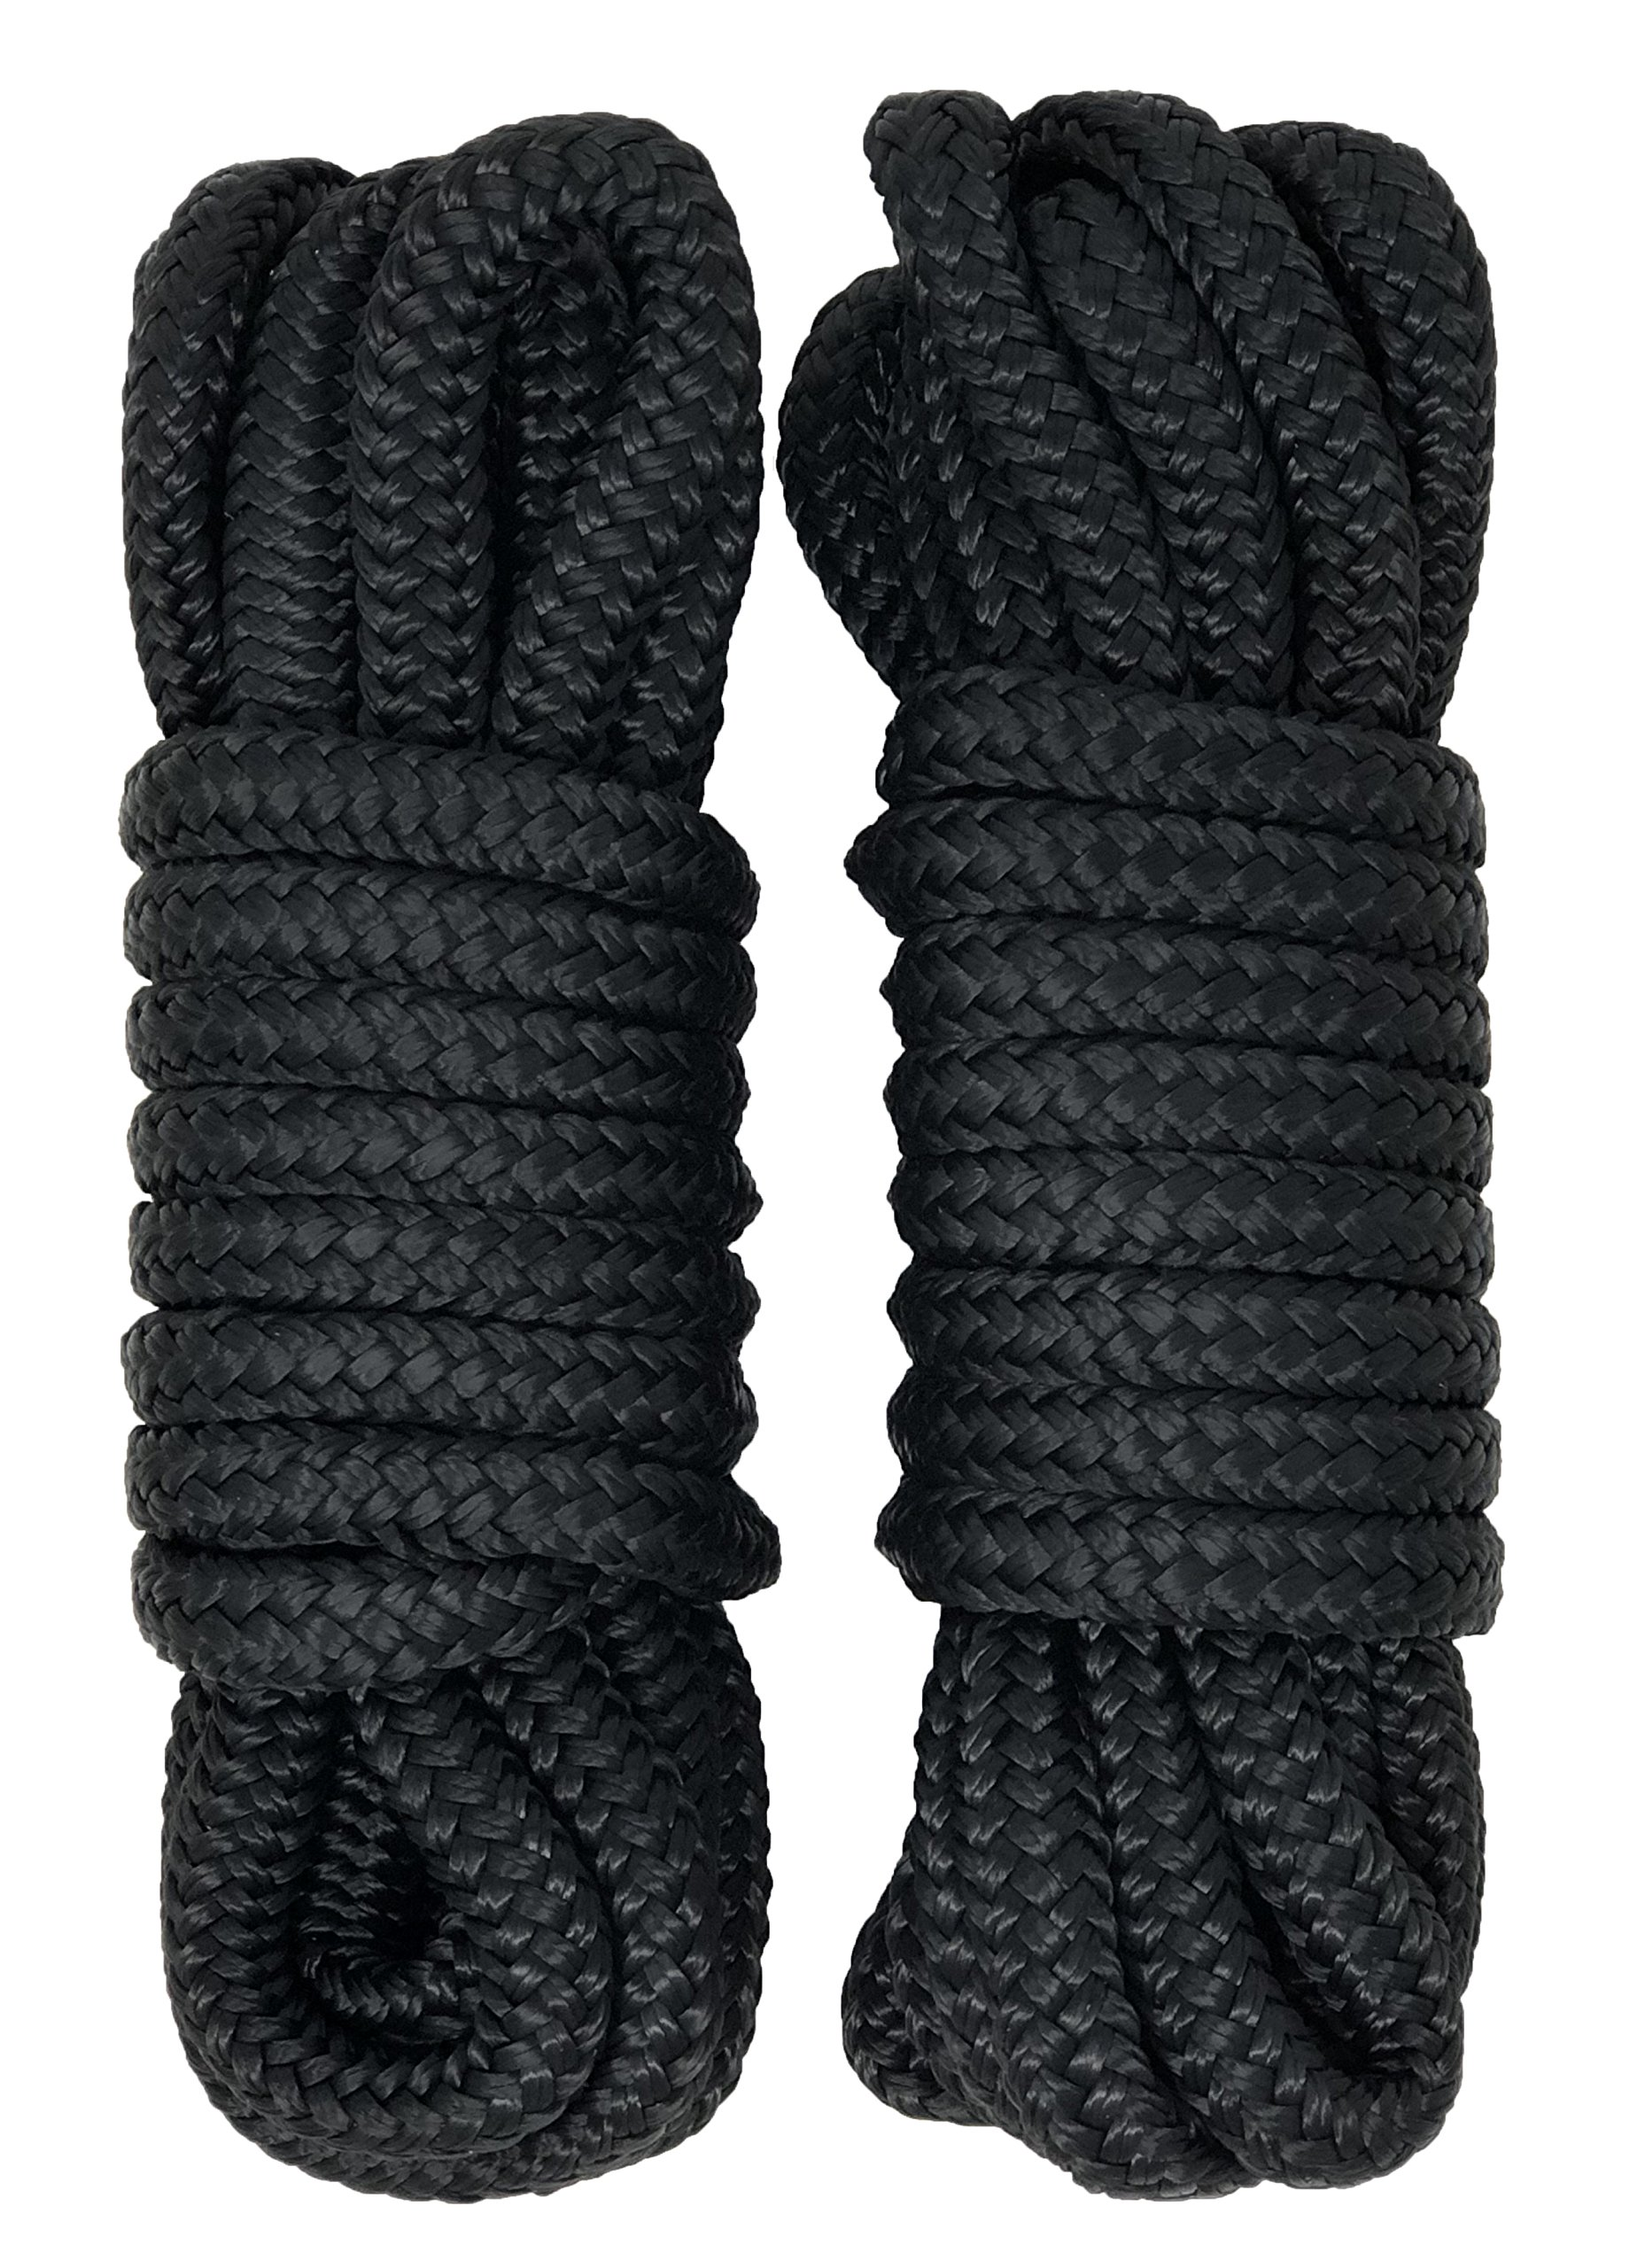 Rainier Supply Co Dock Lines - 2 Pack 15' Double Braided Nylon Dock Line/Mooring Lines - Ultra Strong and Soft - Boat Accessories - 15' x 3/8'' with 12'' Eyelet, Black by Rainier Supply Co